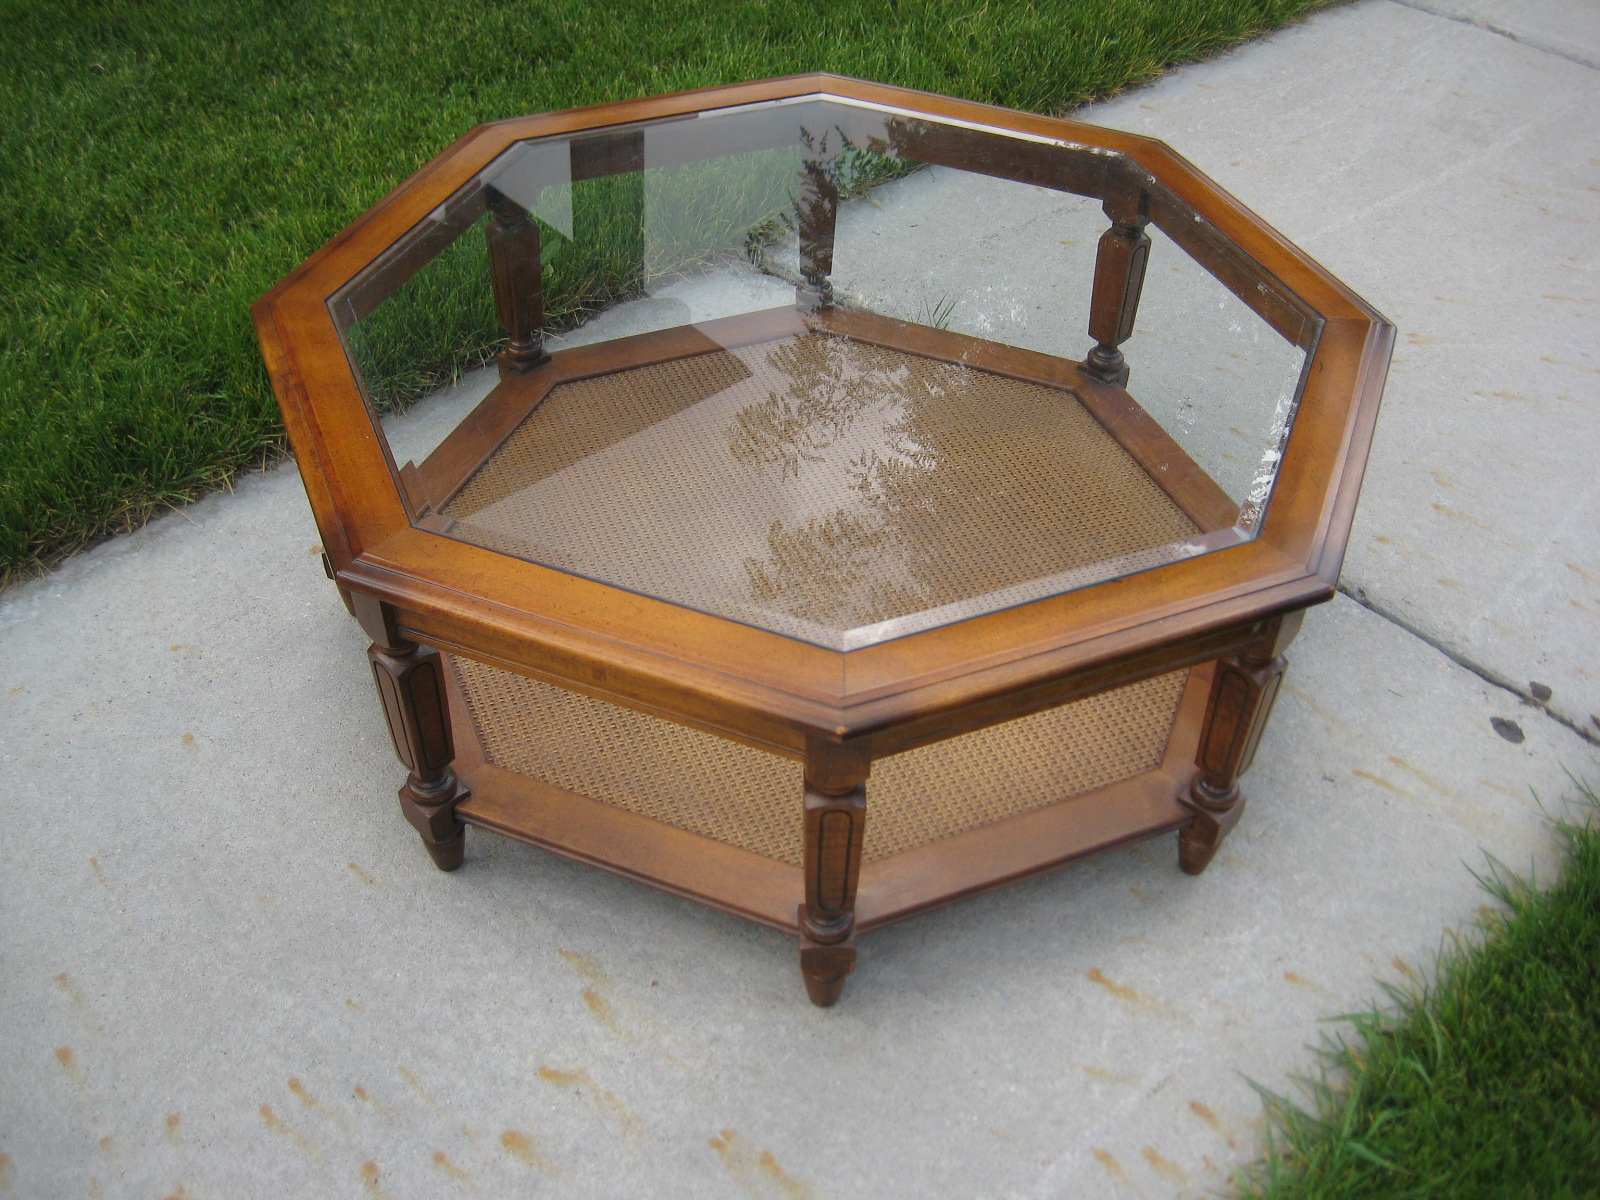 Thornton moving sale octagon coffee table 50 obo for Octagon coffee table